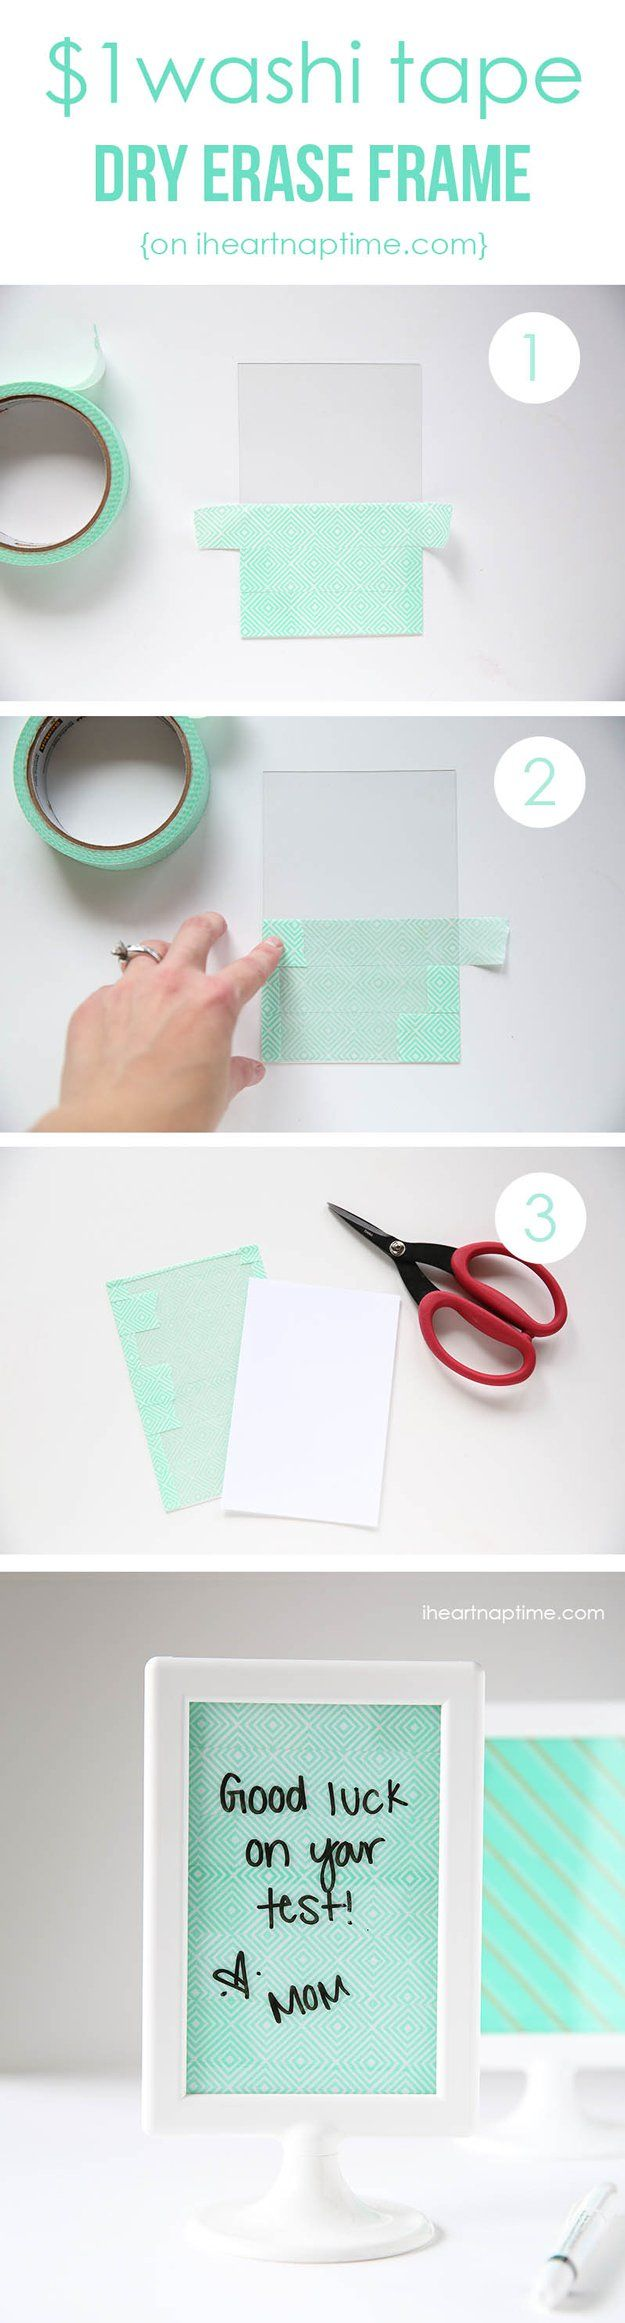 Washi Tape Crafts - Cute DIY Dry Erase Frame - Wall Art, Frames, Cards, Pencils, Room Decor and DIY Gifts, Back To School Supplies - Creative, Fun Craft Ideas for Teens, Tweens and Teenagers - Step by Step Tutorials and Instructions http://diyprojectsforteens.com/washi-tape-crafts